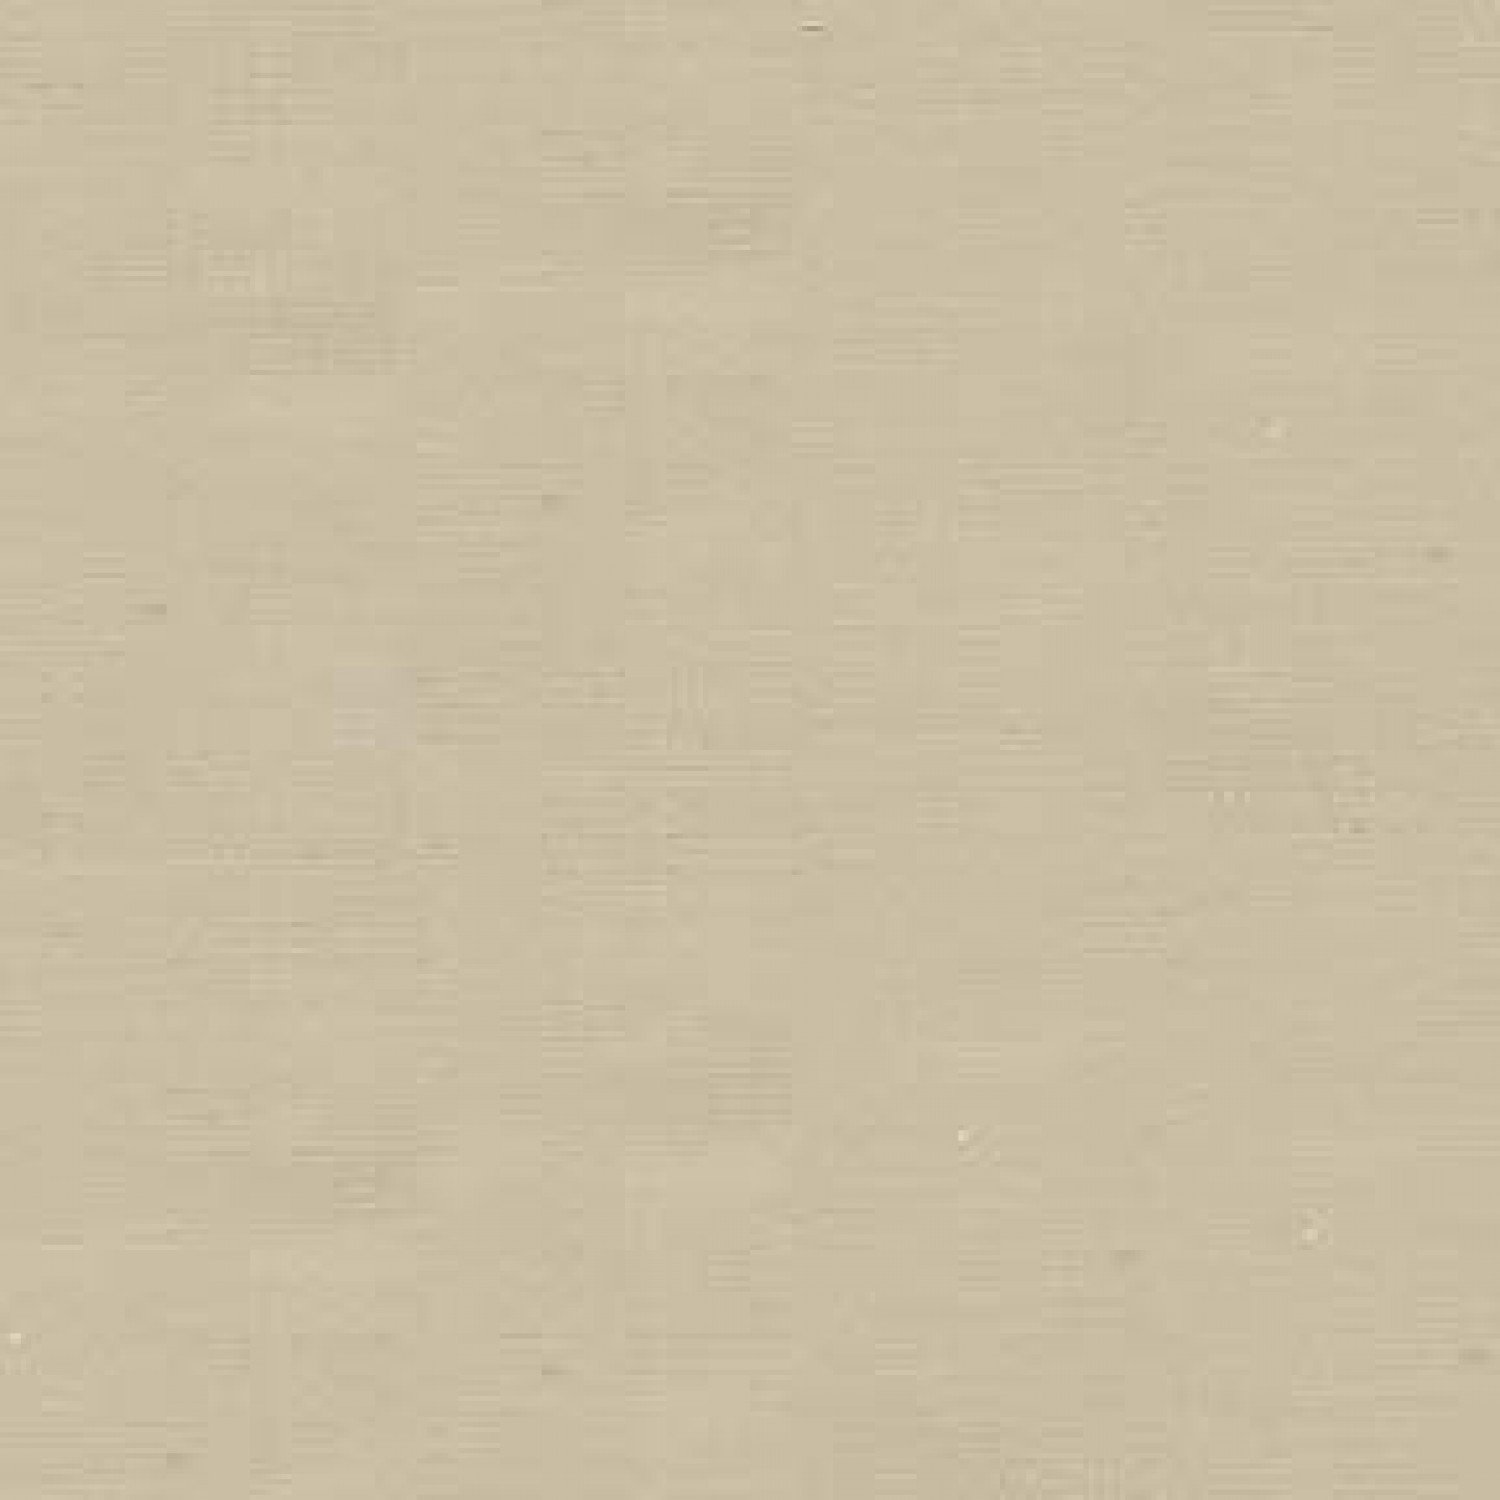 Tea Stain Sateen 118 wide - 1.875 yd cut *